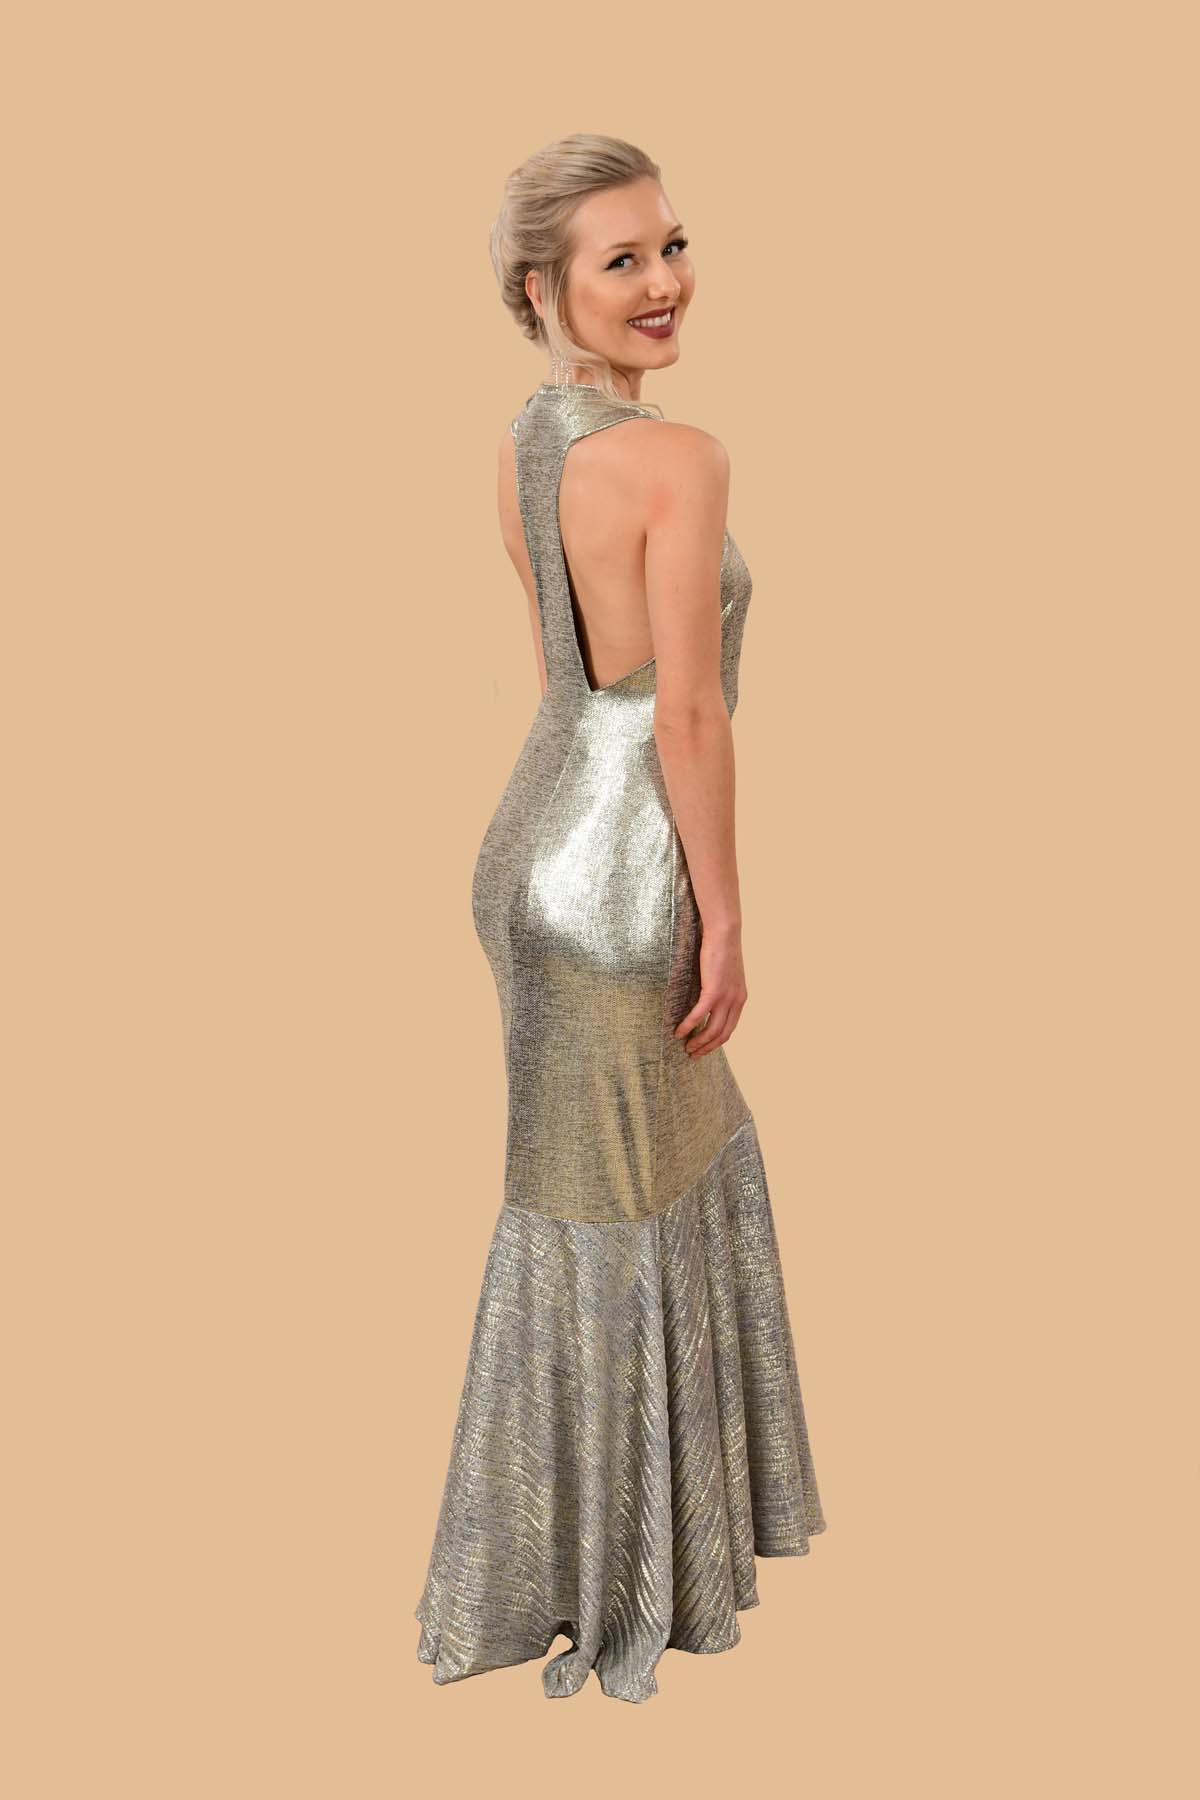 Jean Gold Sparkle Gown